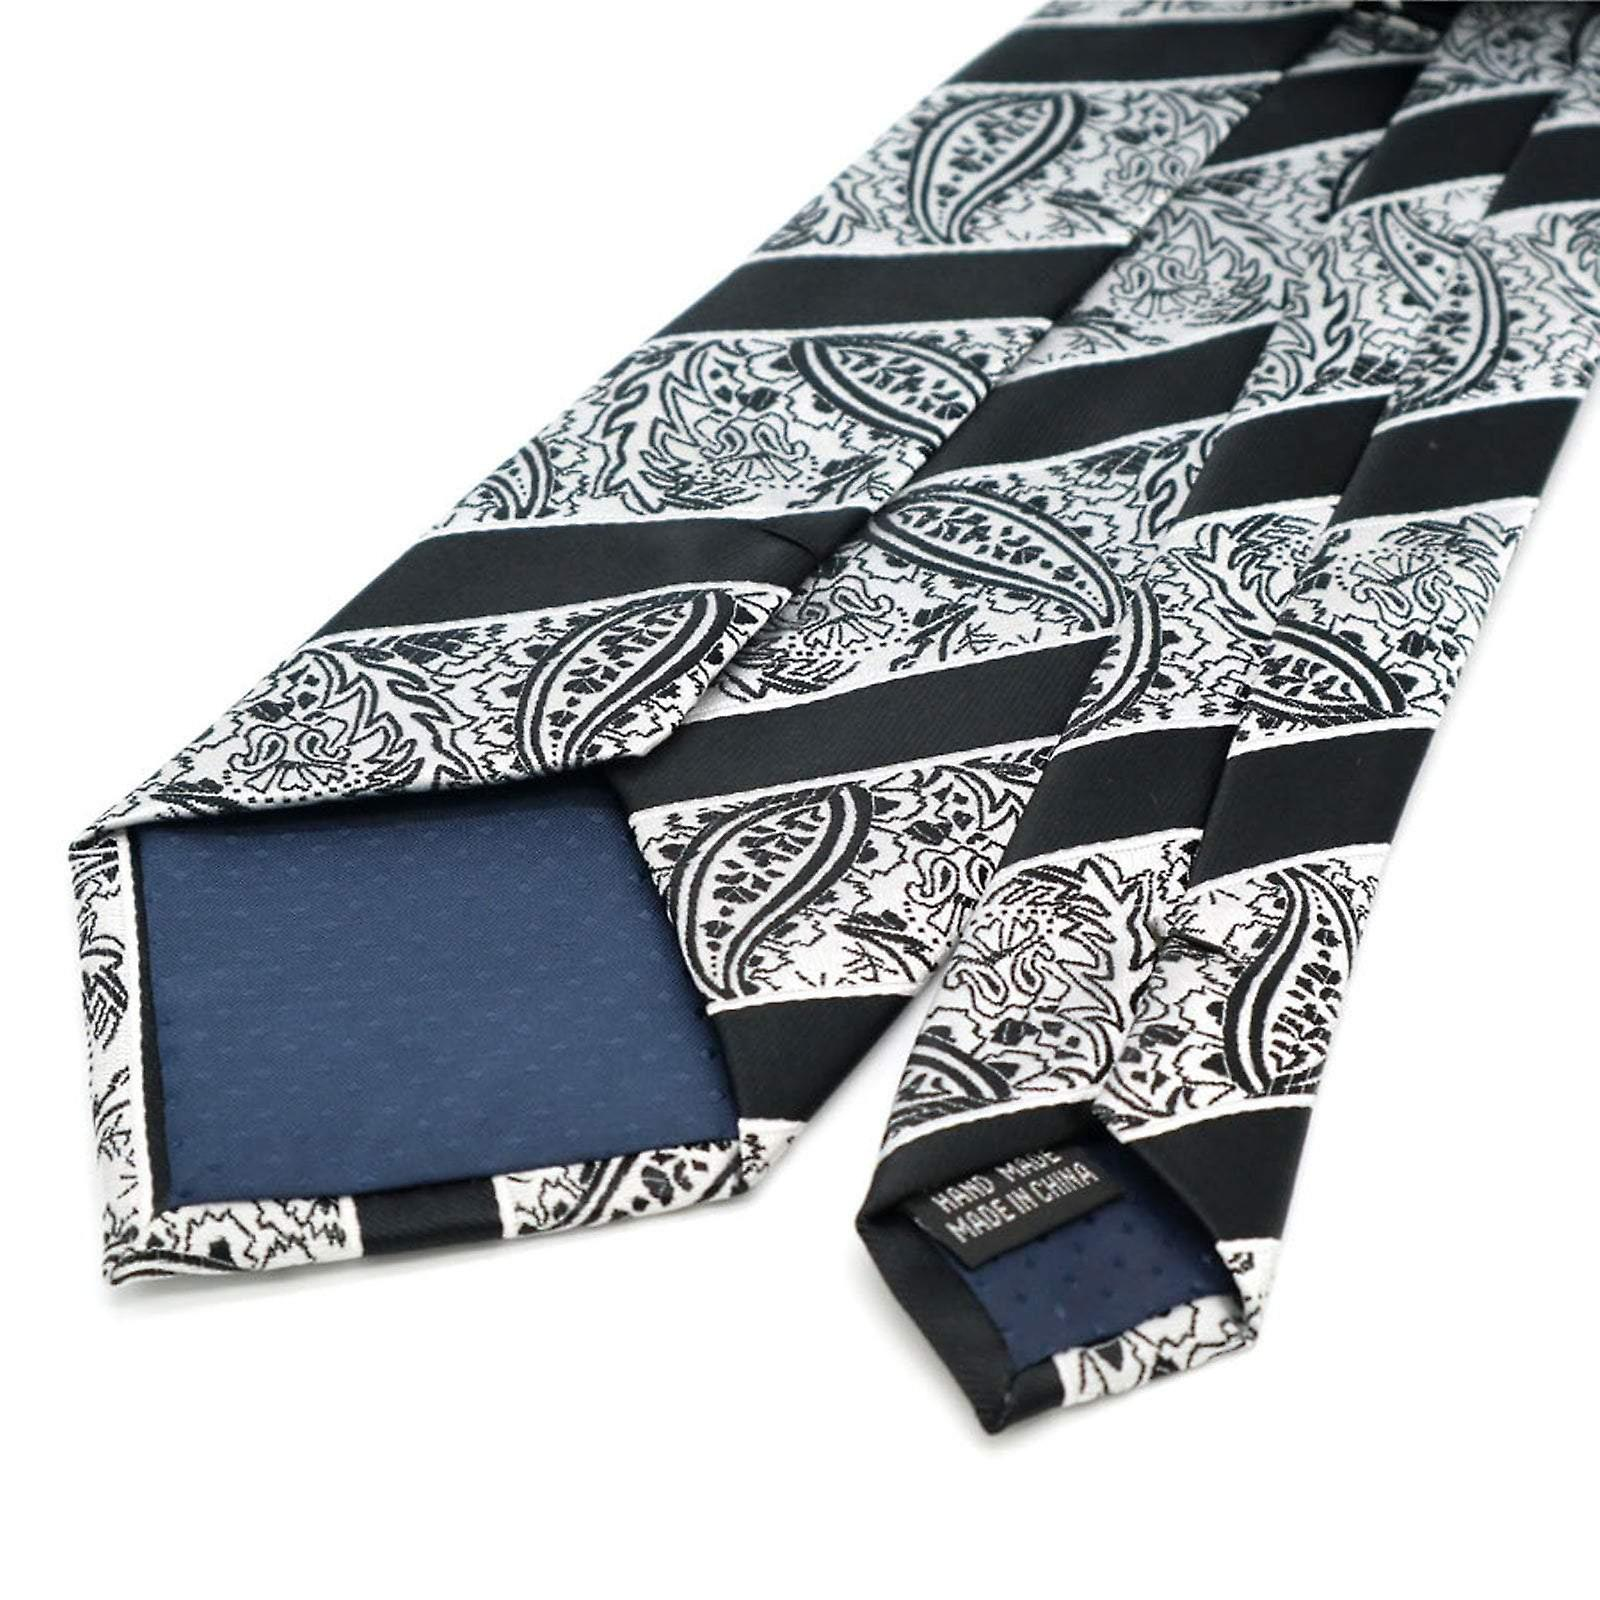 Black & white paisley stripe pocket square & tie set